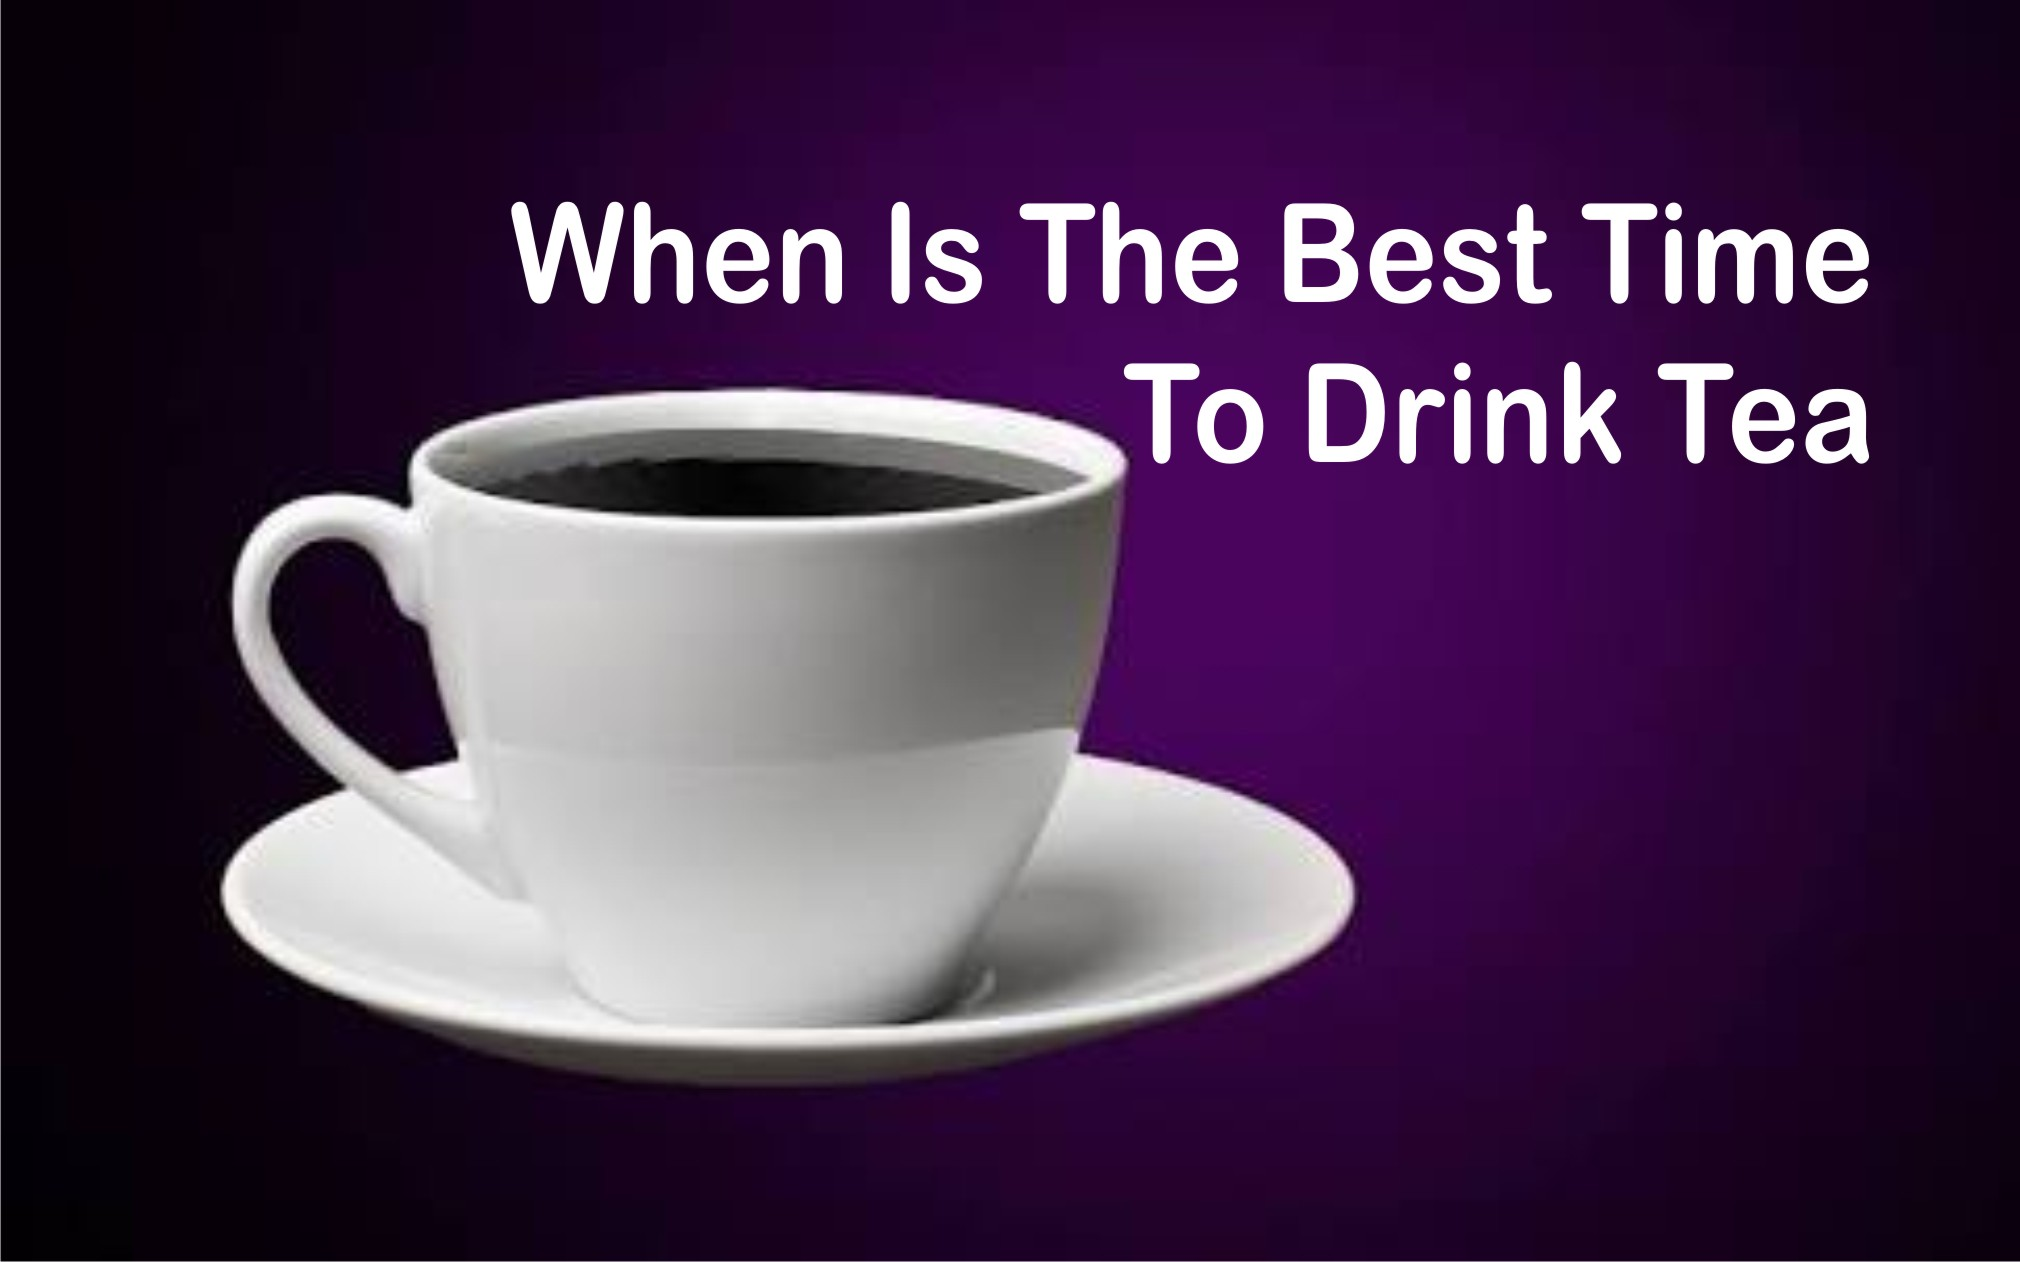 When Is The Best Time To Drink Tea